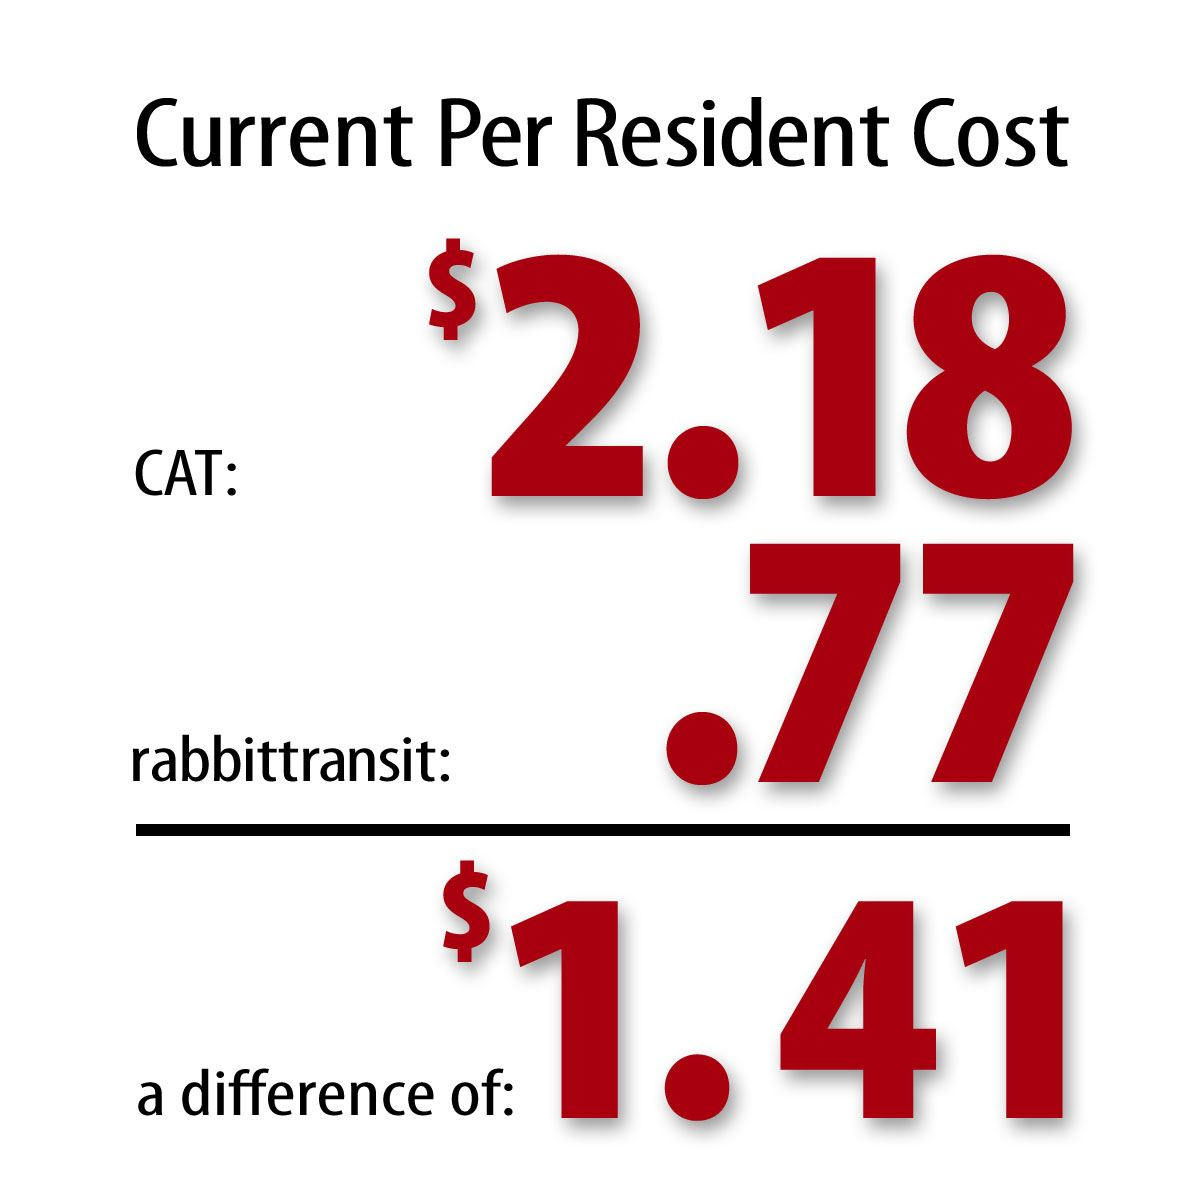 Current Per Resident Cost for CAT is $2.18 versus rabbittransit's $0.77, a difference of $1.41.